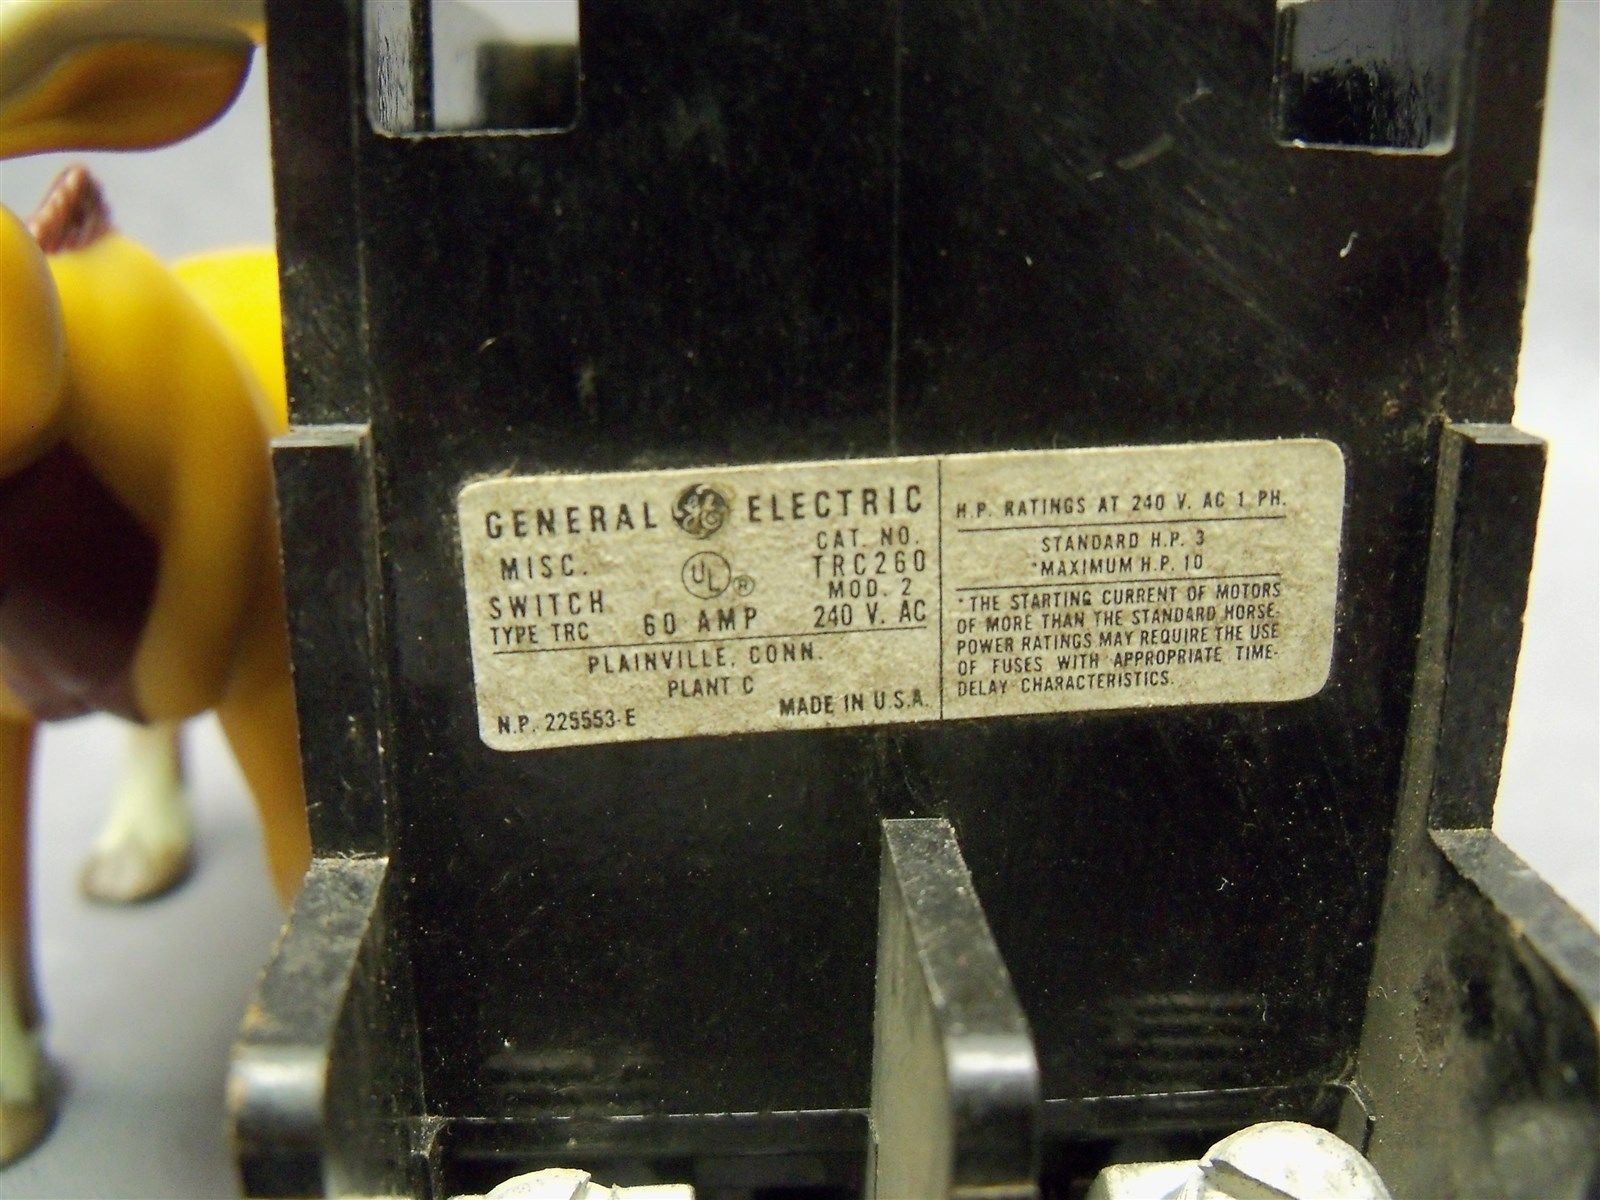 General Electric Ge Trc260 Fuse Panel Box And 50 Similar Items Pull Outs Block 60 Amp